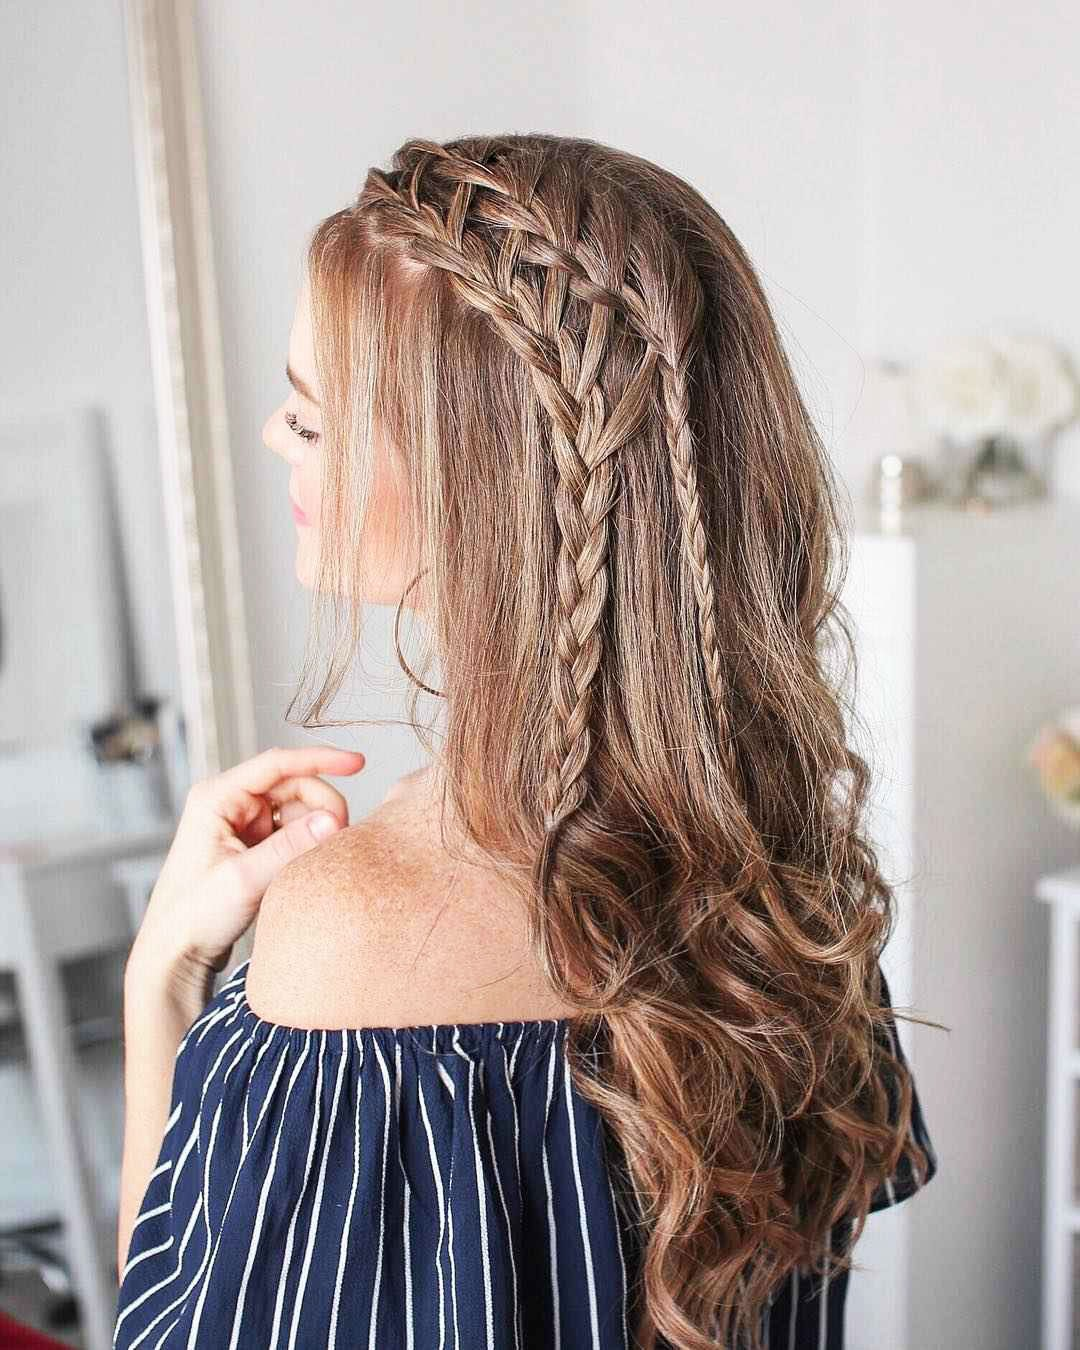 Hairstyles For Prom On Long Hair 2019-2020: Photo 12